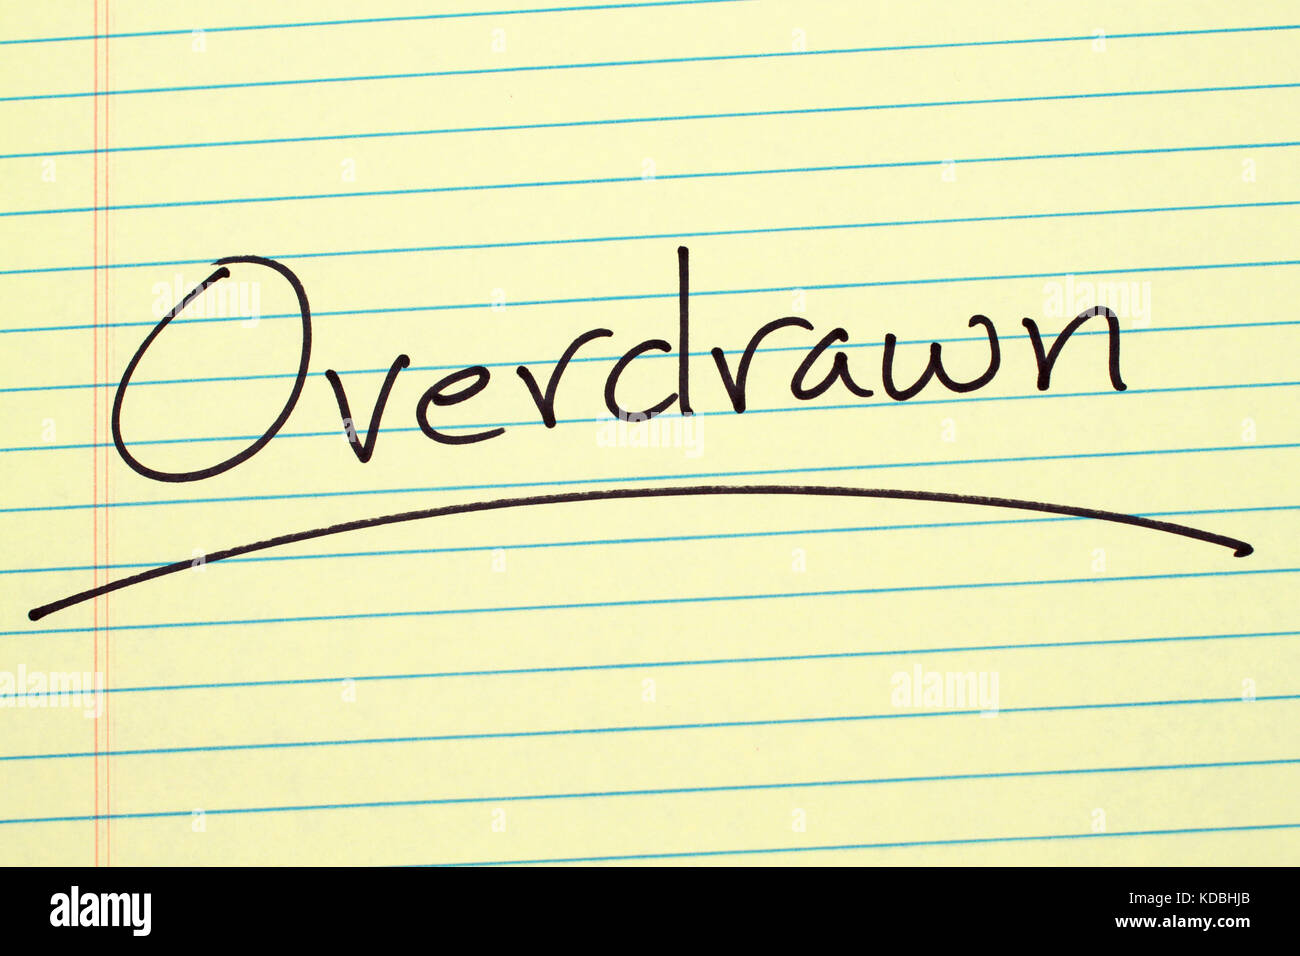 The word 'Overdrawn' underlined on a yellow legal pad - Stock Image